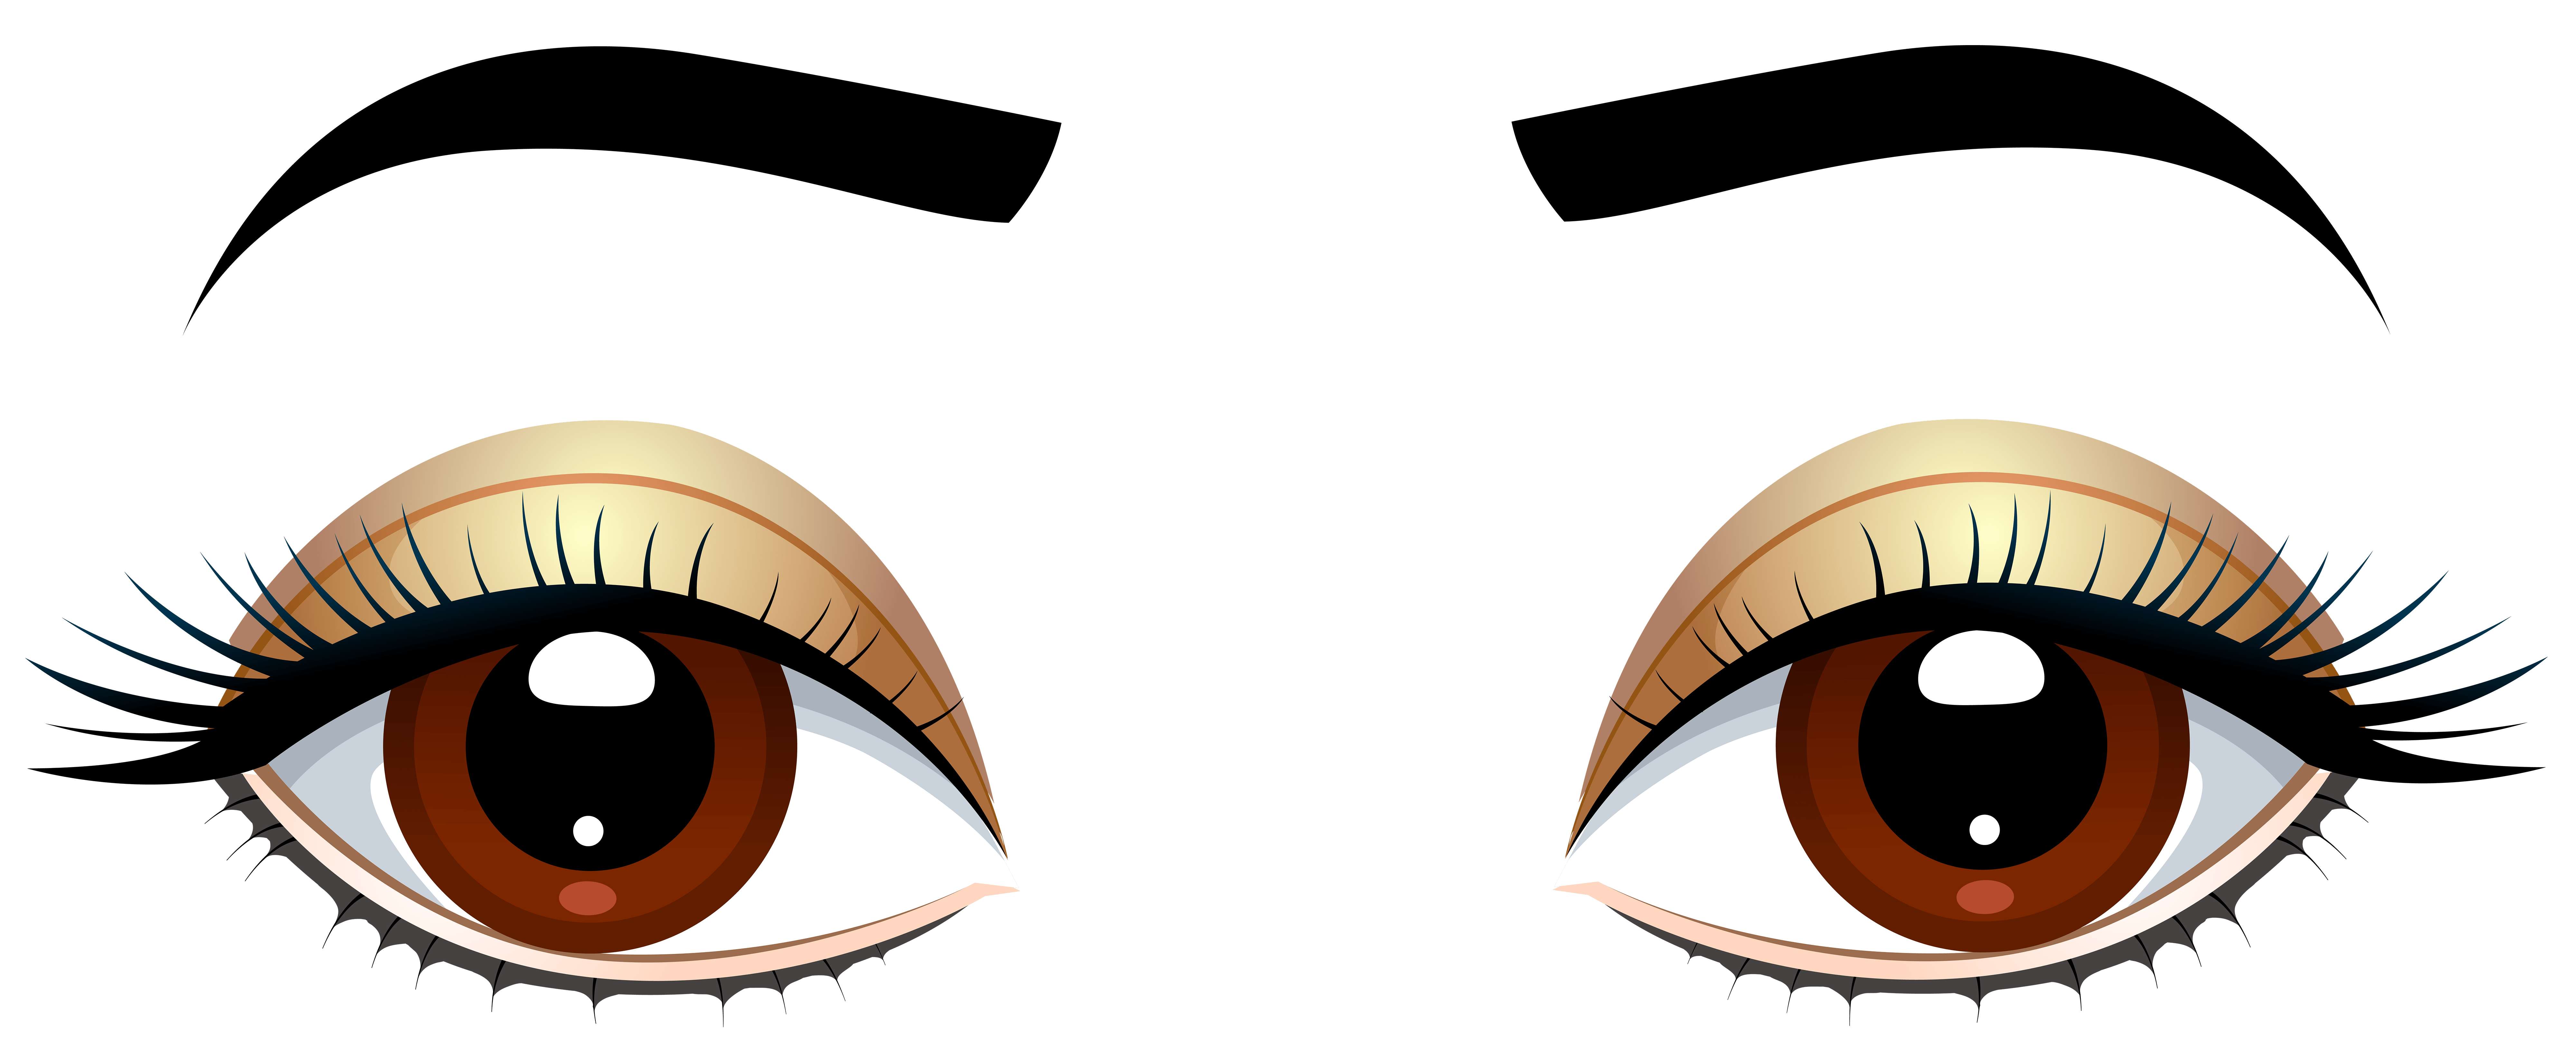 Eyes clipart cute, Eyes cute Transparent FREE for download on.